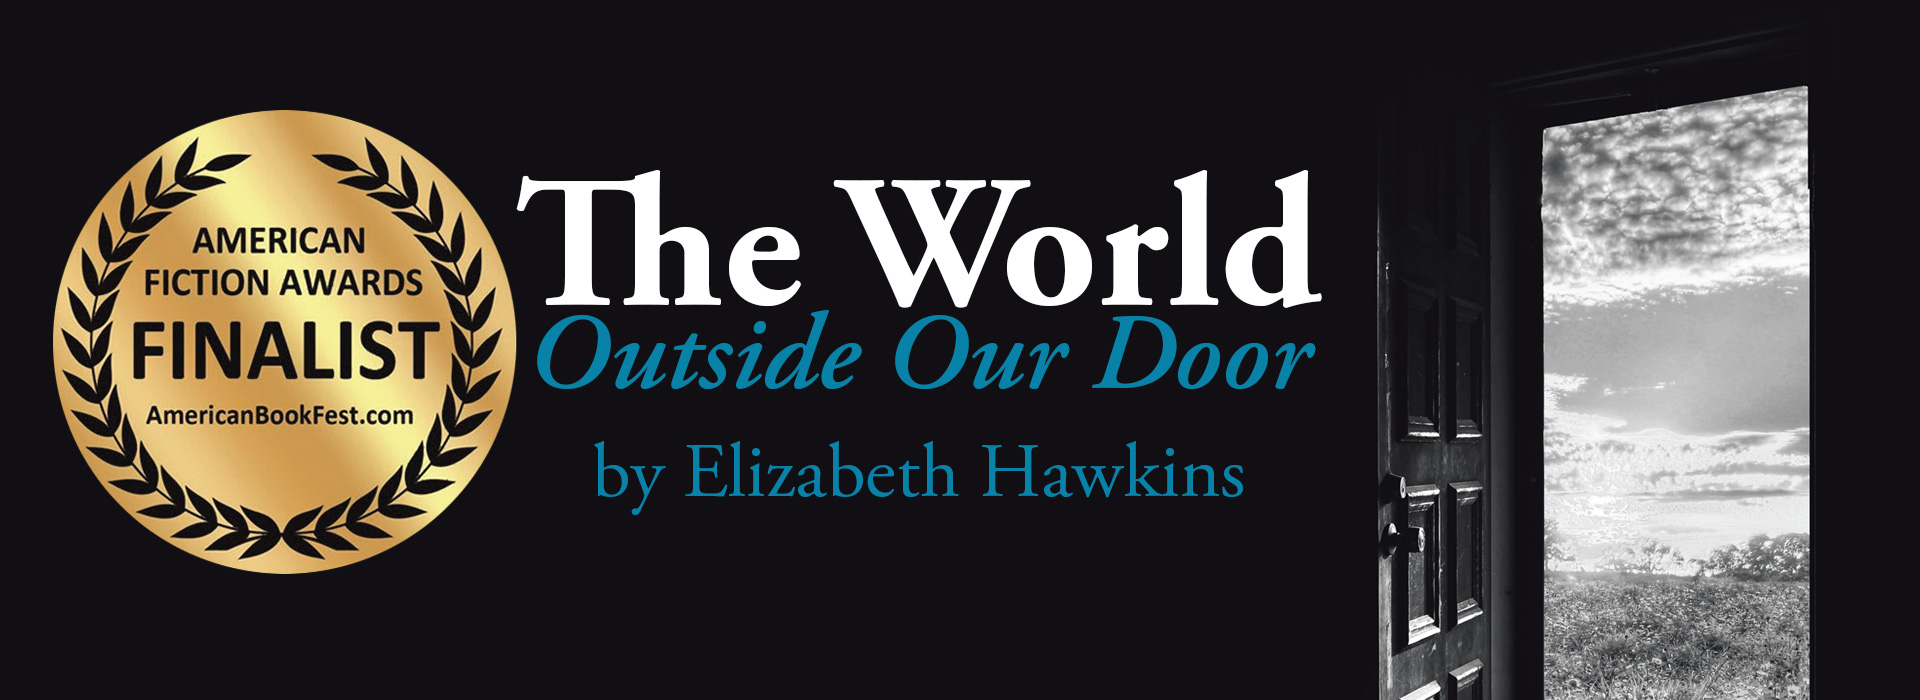 The World outside Our Door